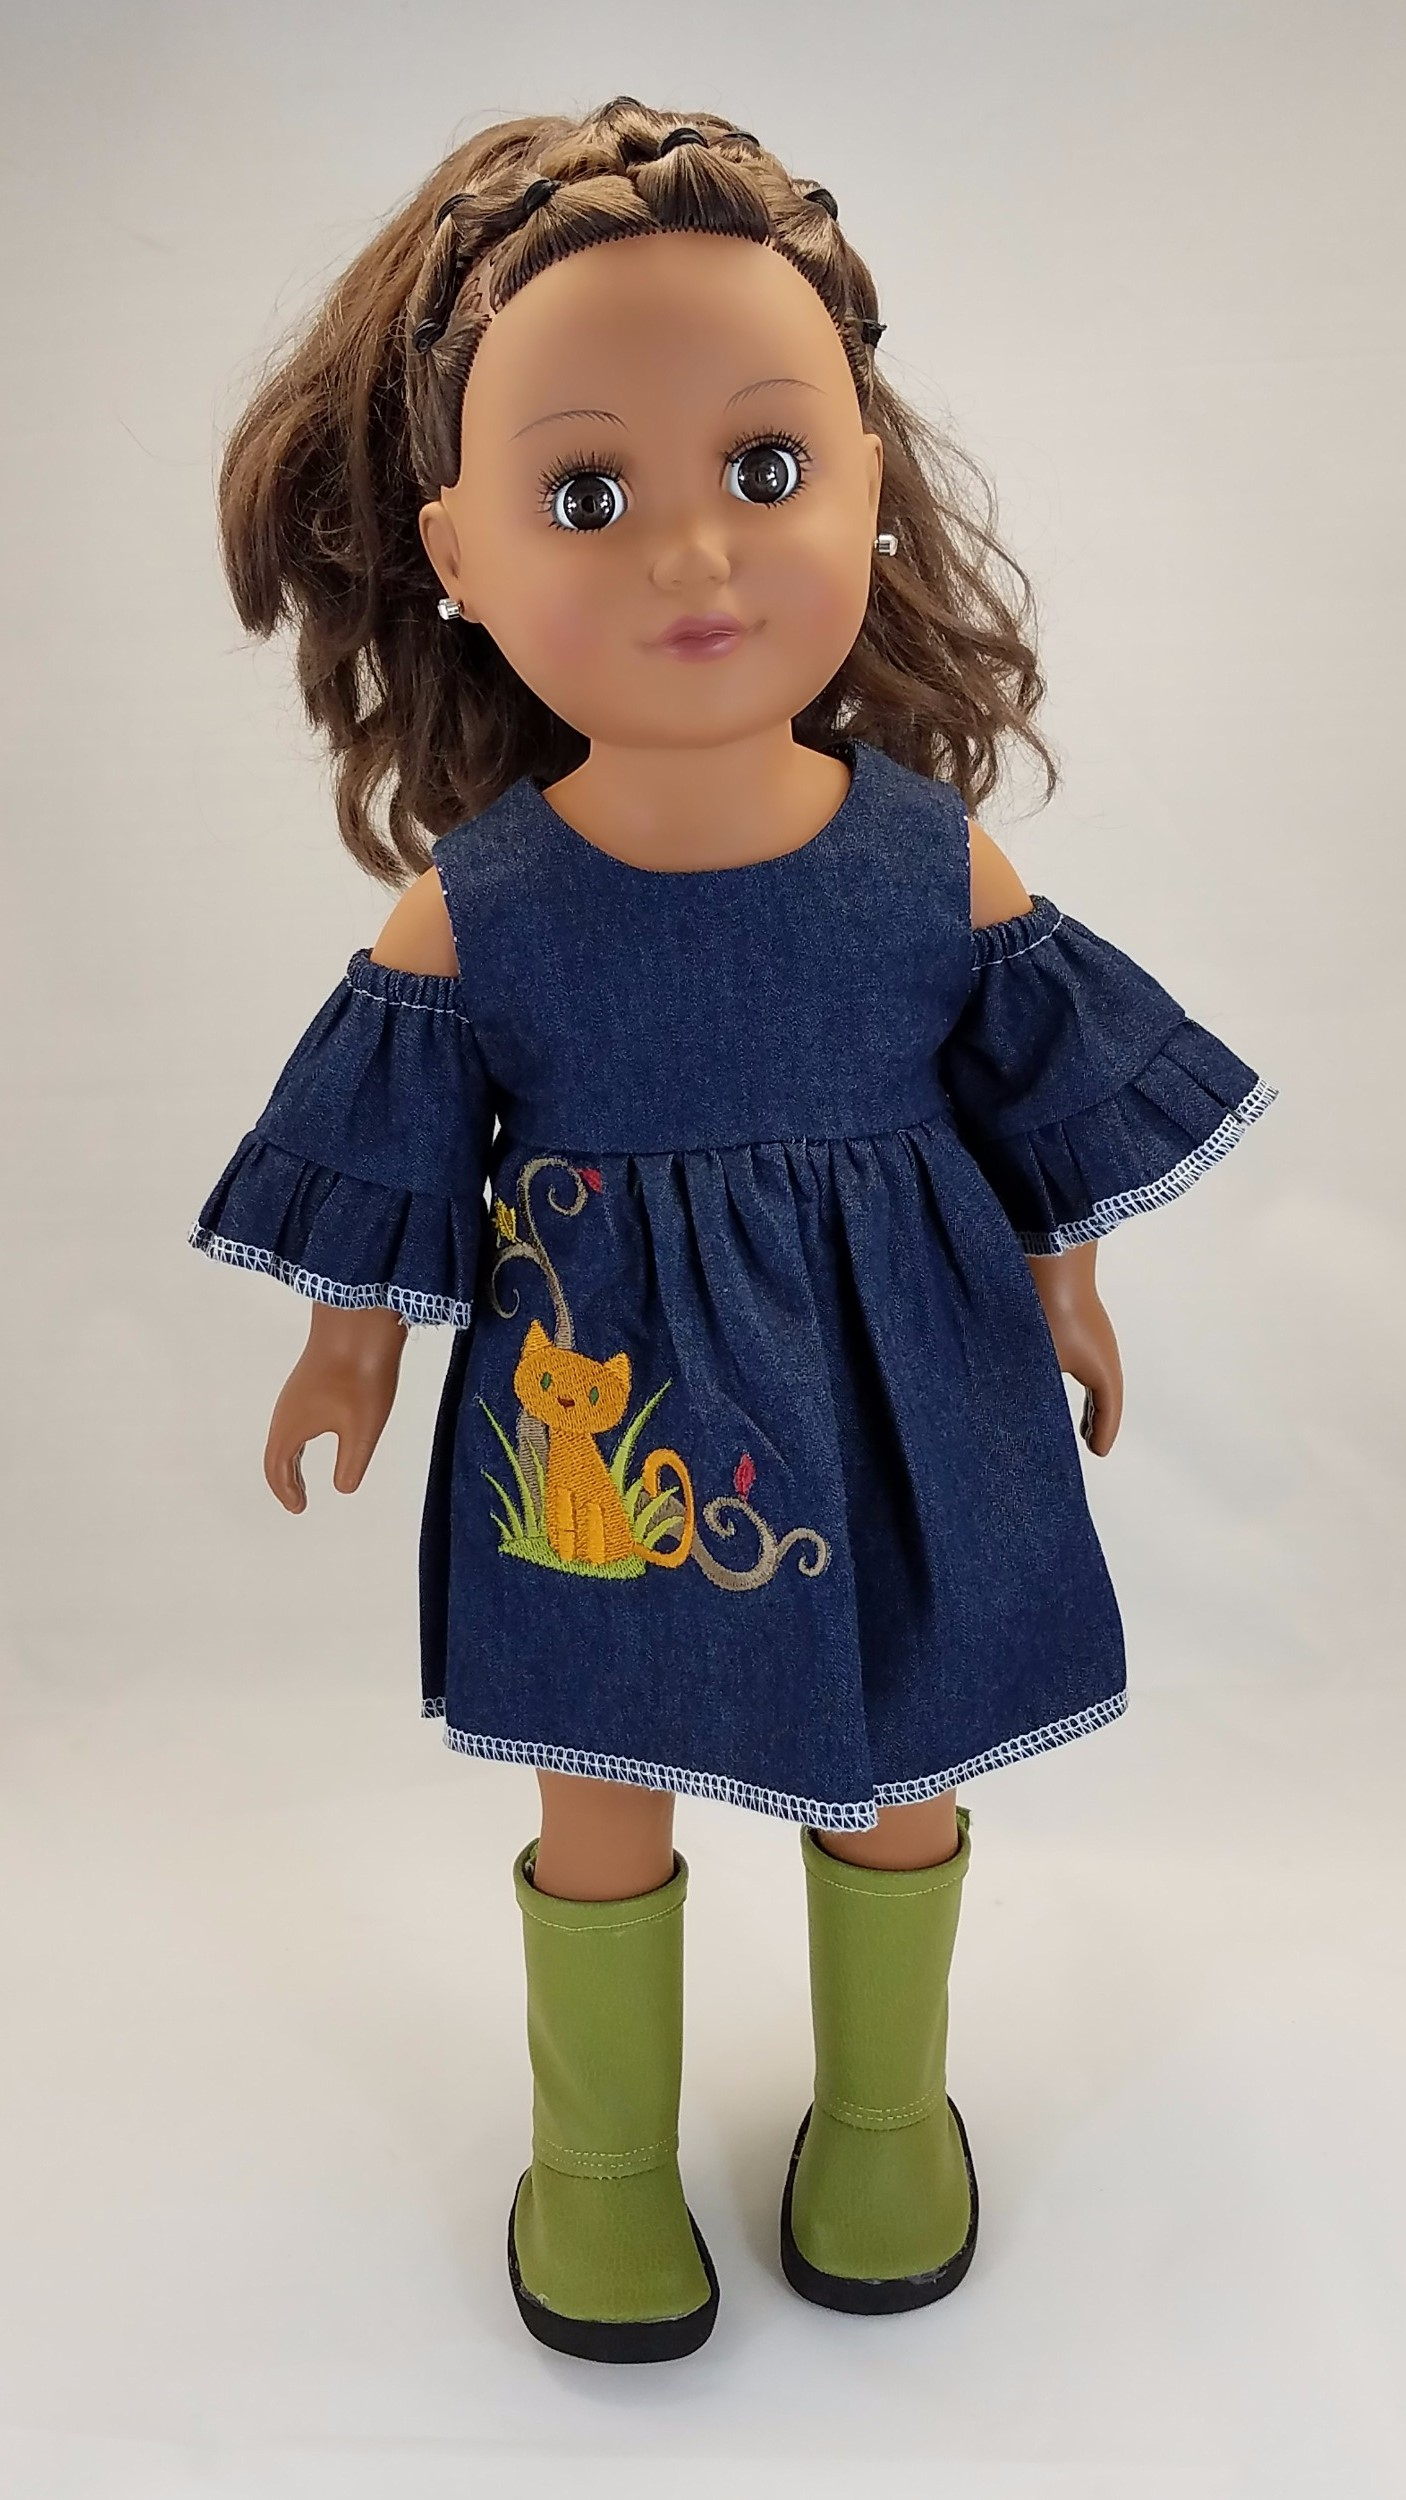 Doll Clothes Patterns By Valspierssews Review Of American: QTPie Doll Clothing Peek-A-Boo Dress Doll Clothes Pattern